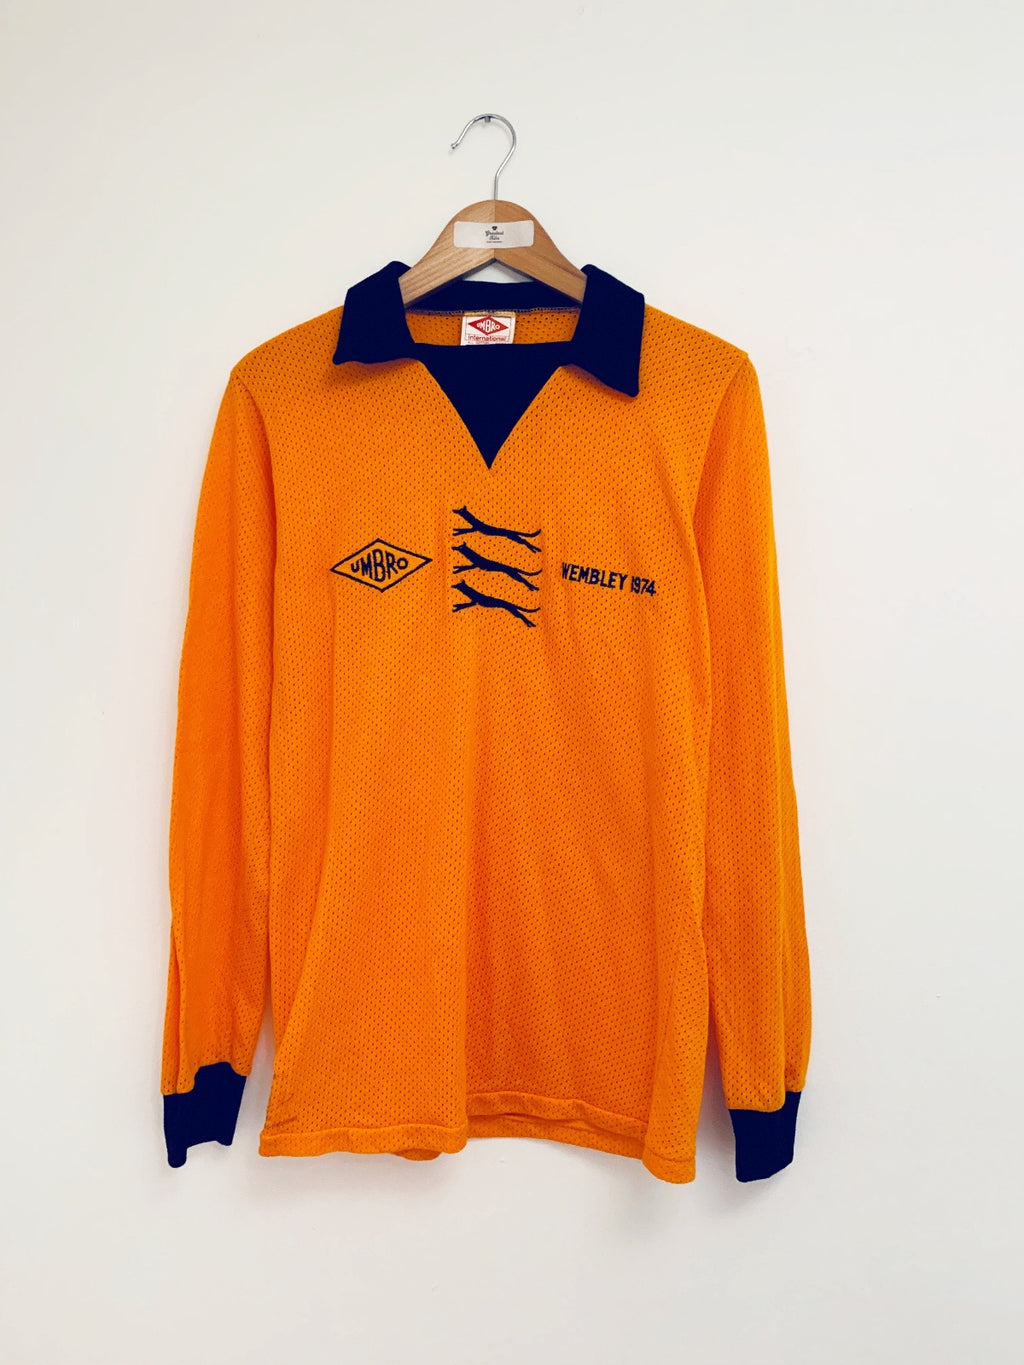 1974 Wolves Home L/S Shirt (M) 9/10